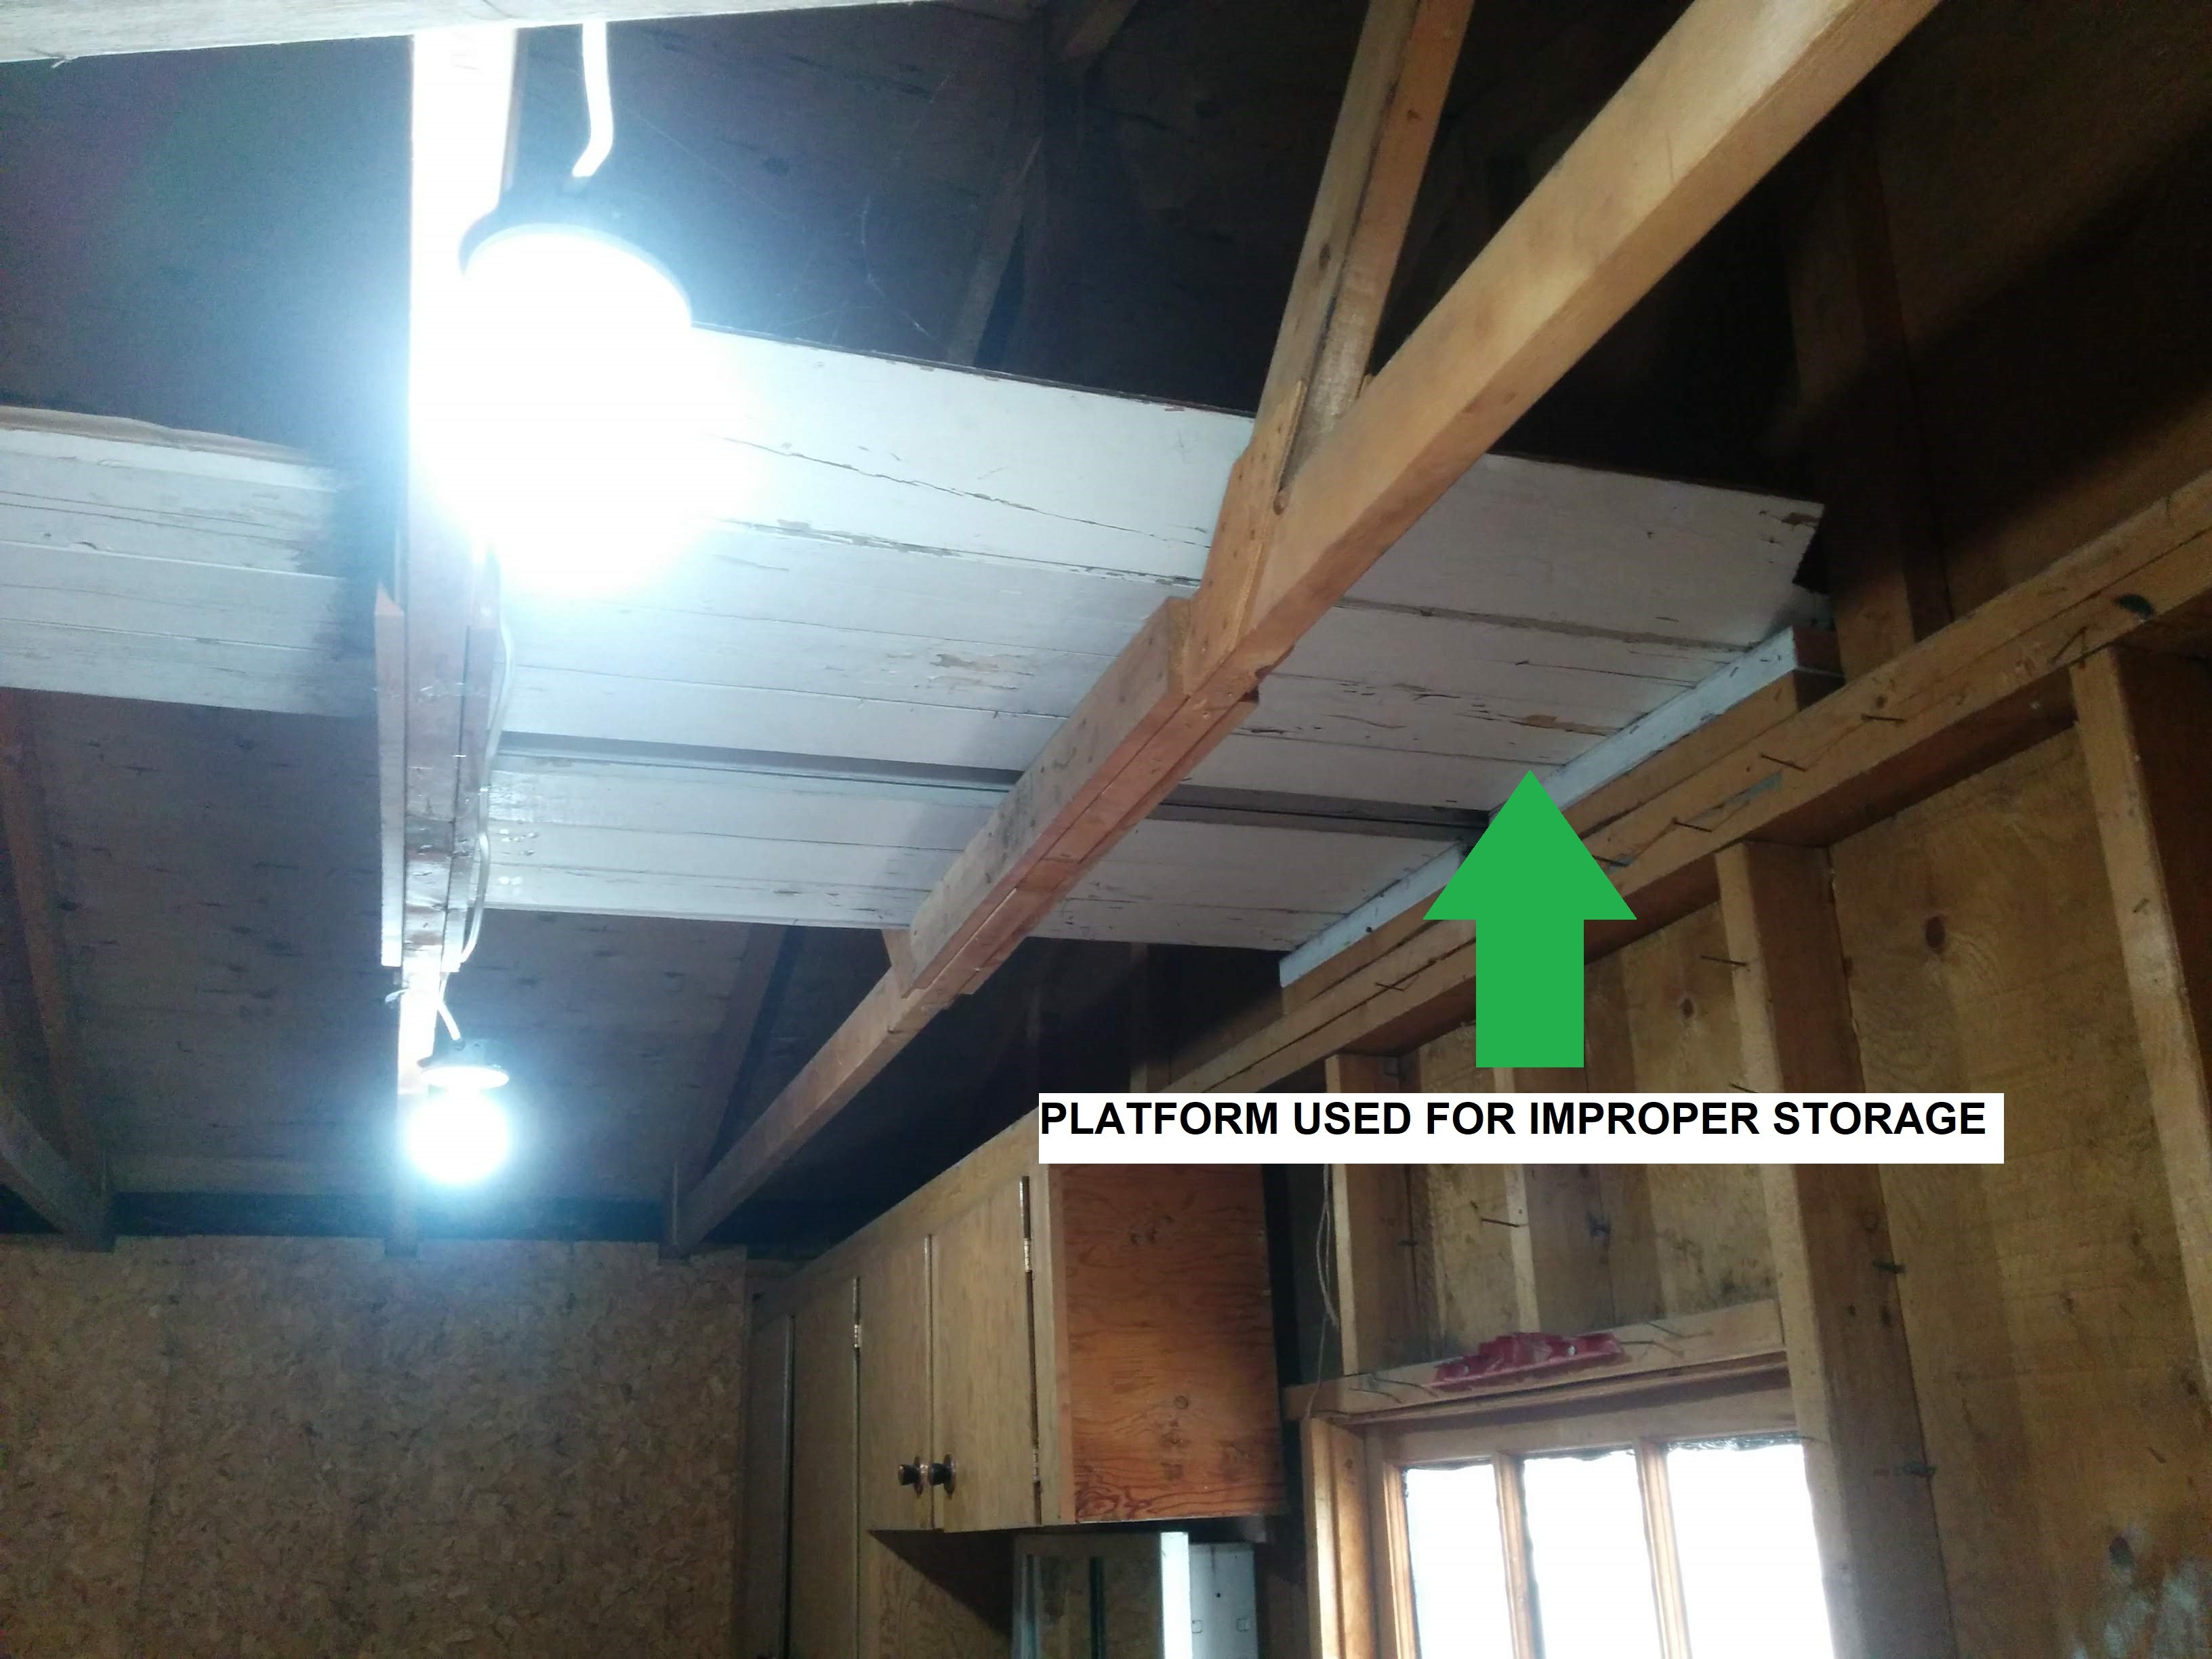 How Can I Safely Reinforce My Garage Trusses To Support Ceiling Drywall And Insulation Home Improvement Stack Exchange